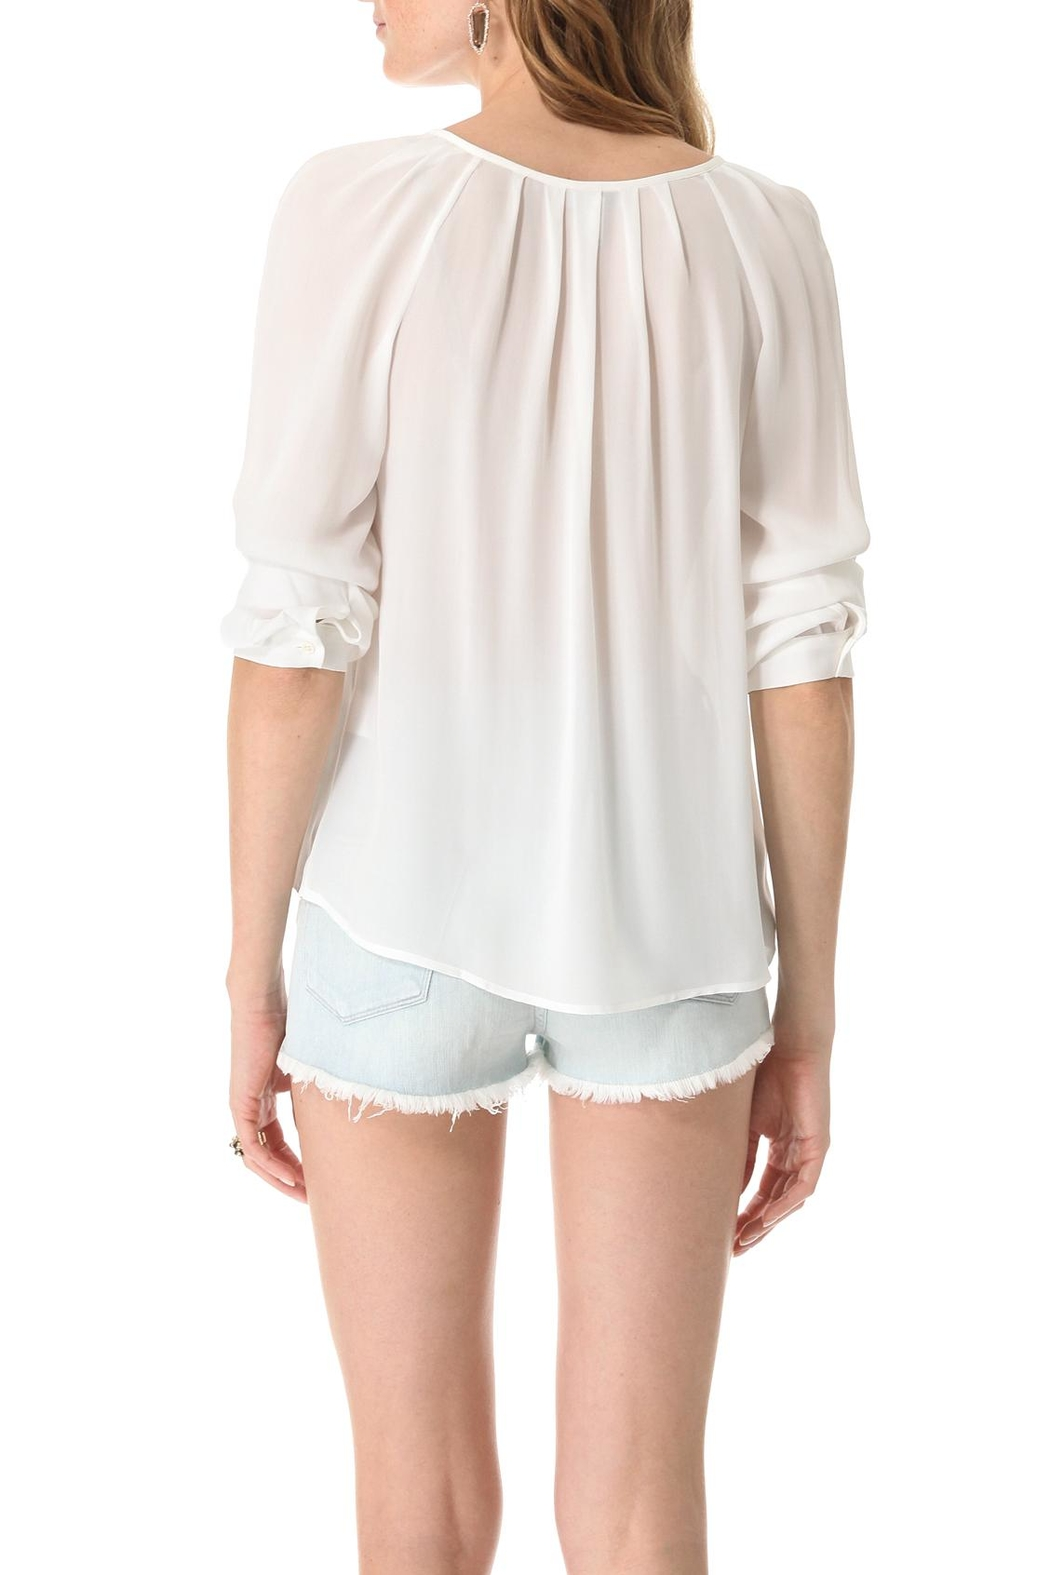 Joie Devin Blouse - Front Full Image